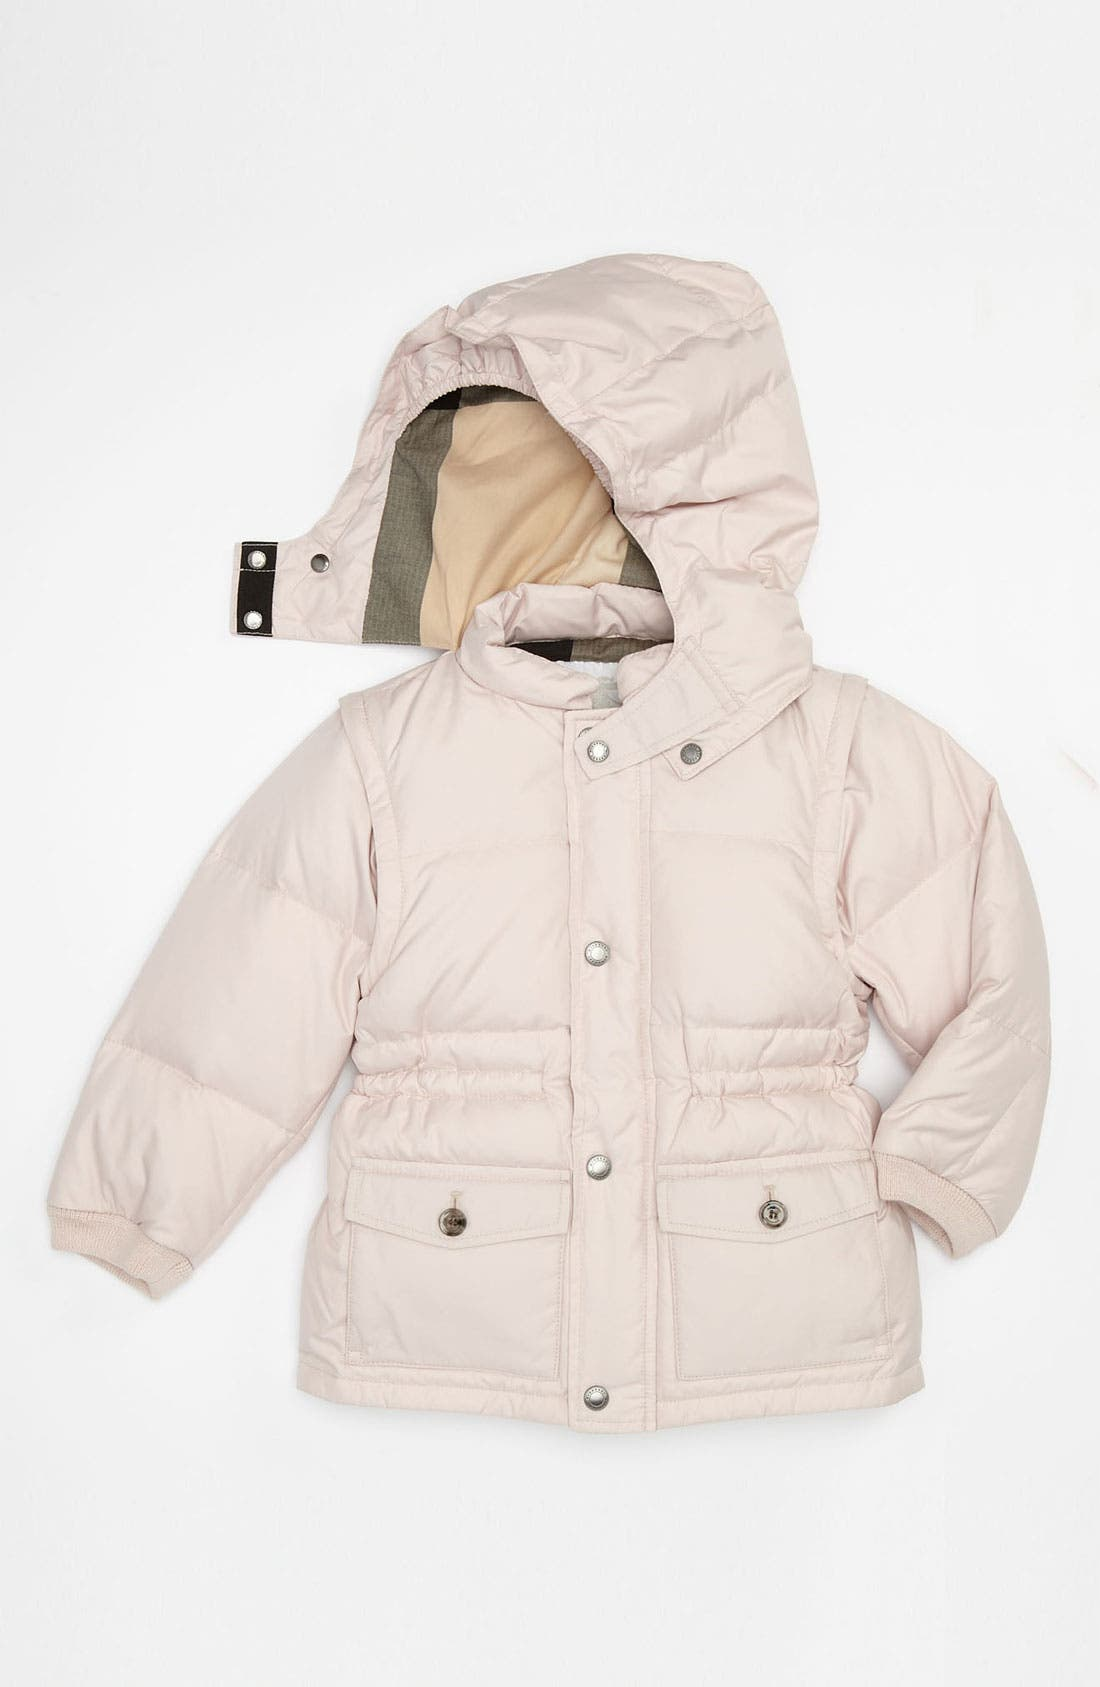 Main Image - Burberry Convertible Puffer Jacket (Toddler)